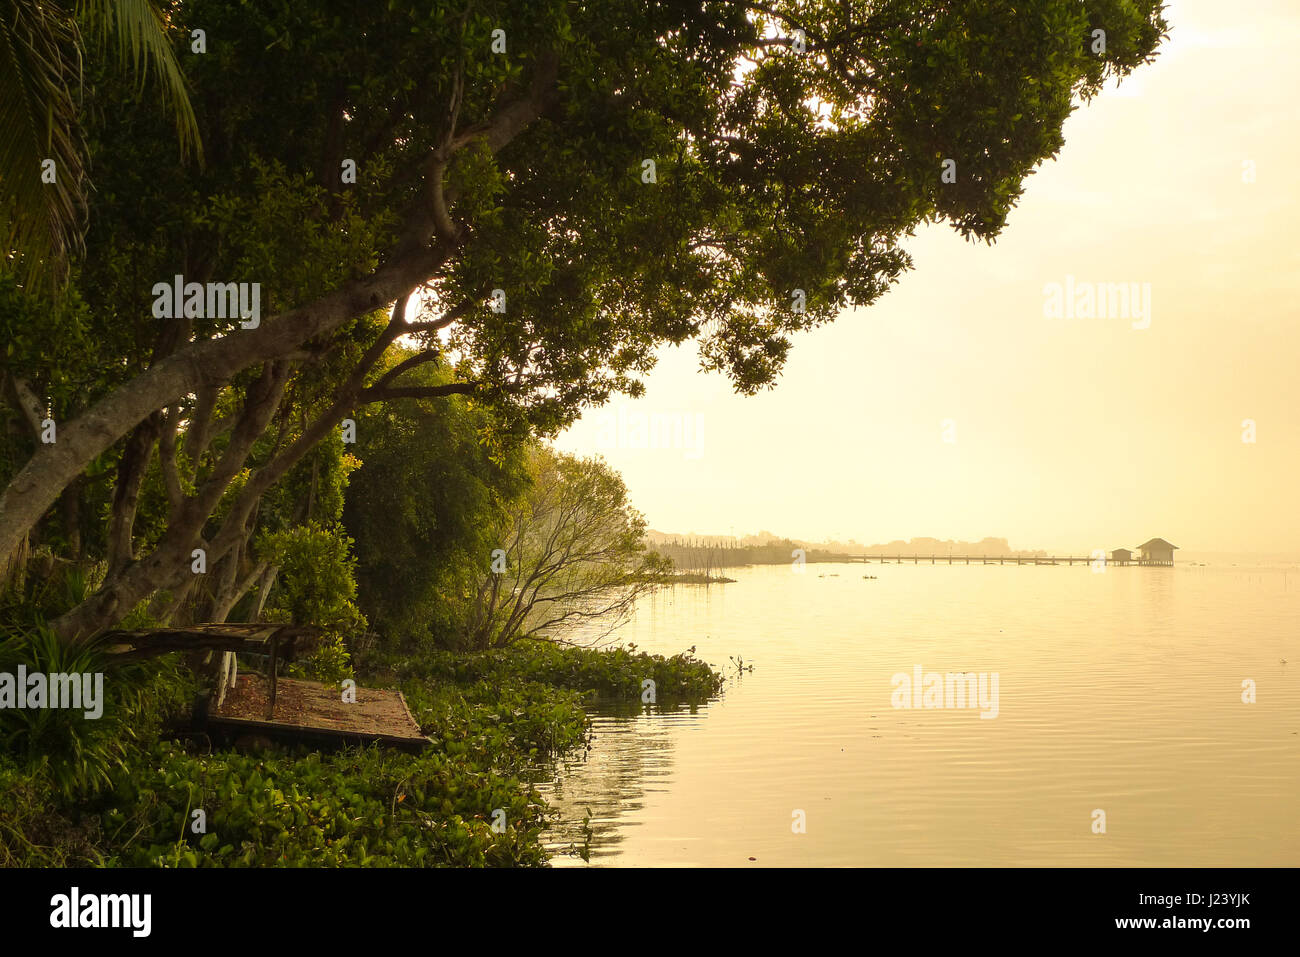 Countryside landscape,Thailand travel scenic,Old waterside on the lake,Warm tone color and selective focus - Stock Image